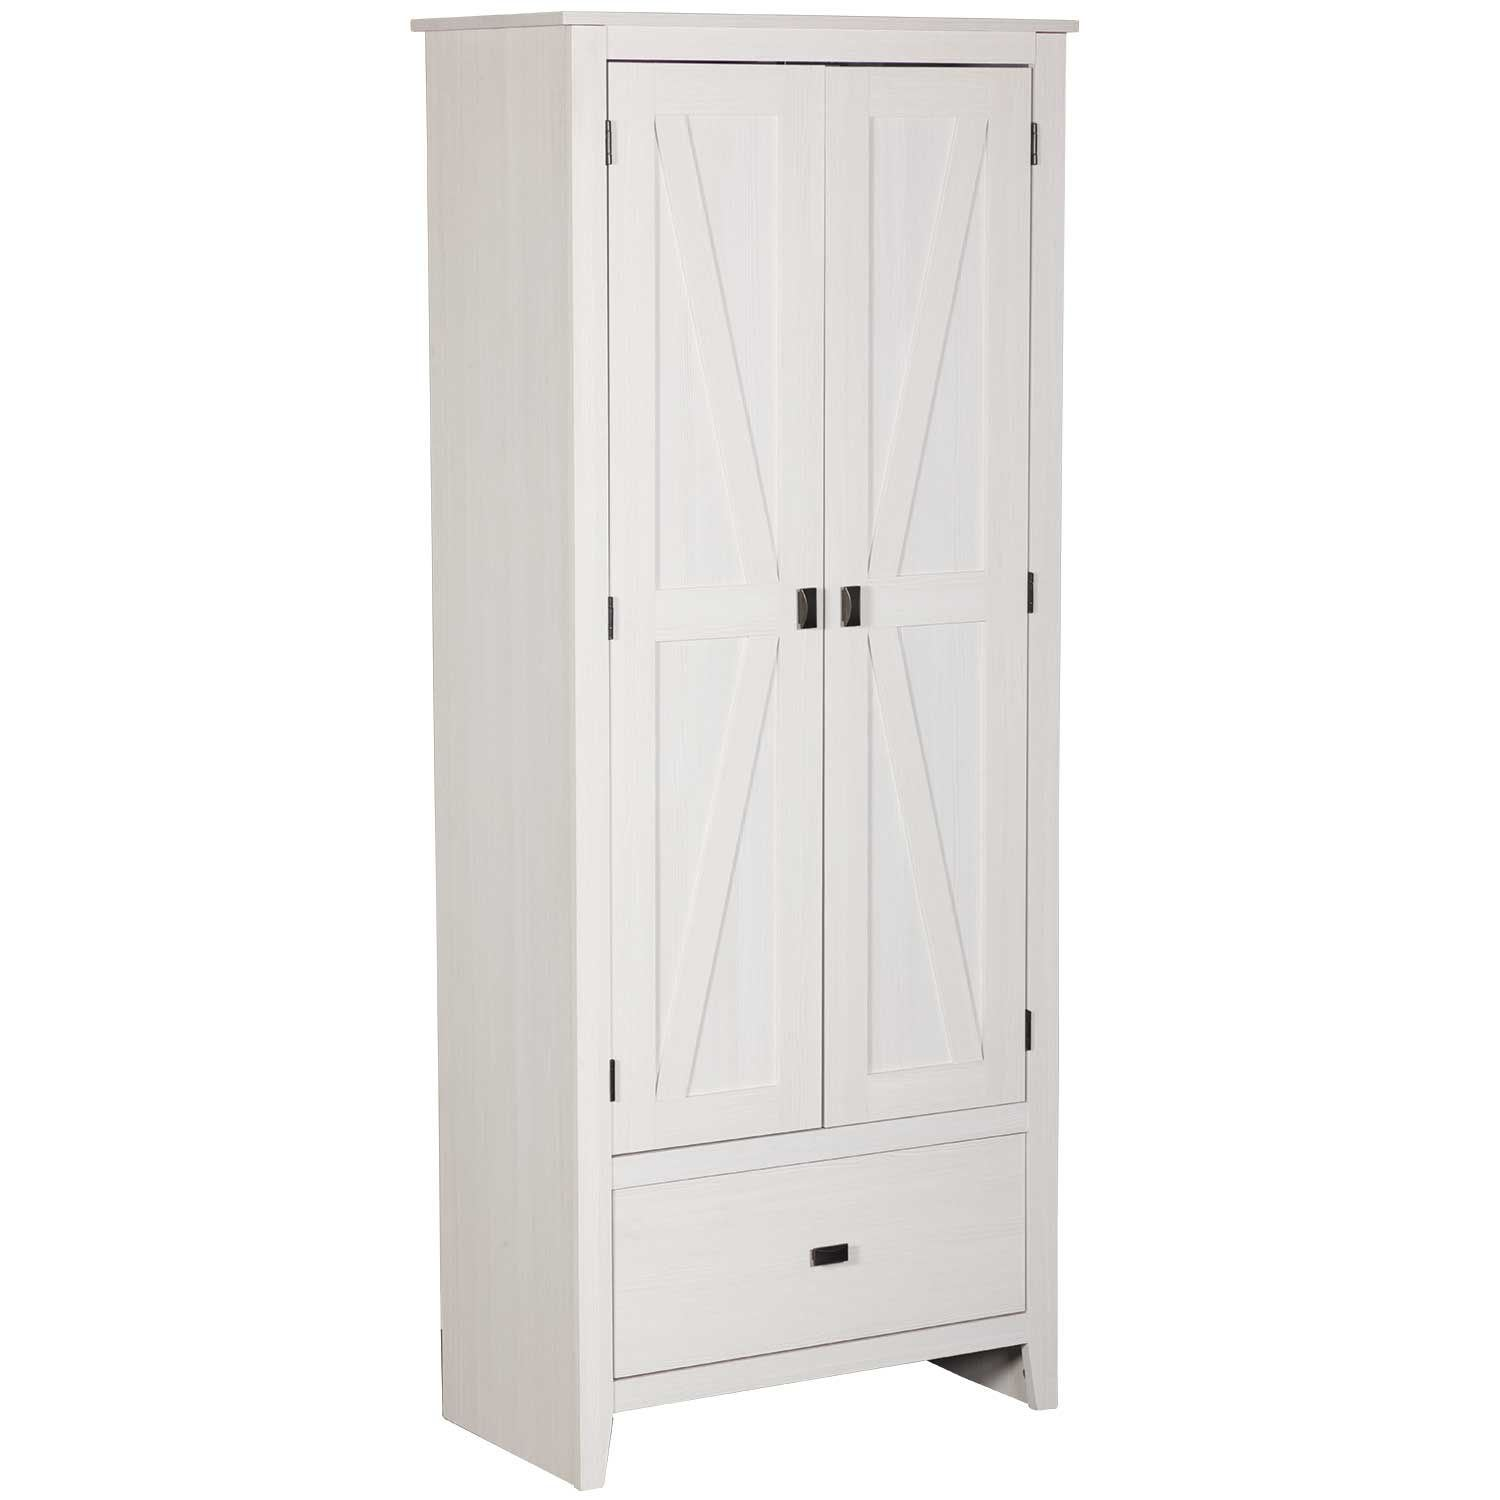 Excellent Farmington 30 Inch White Storage Cabinet Interior Design Ideas Ghosoteloinfo